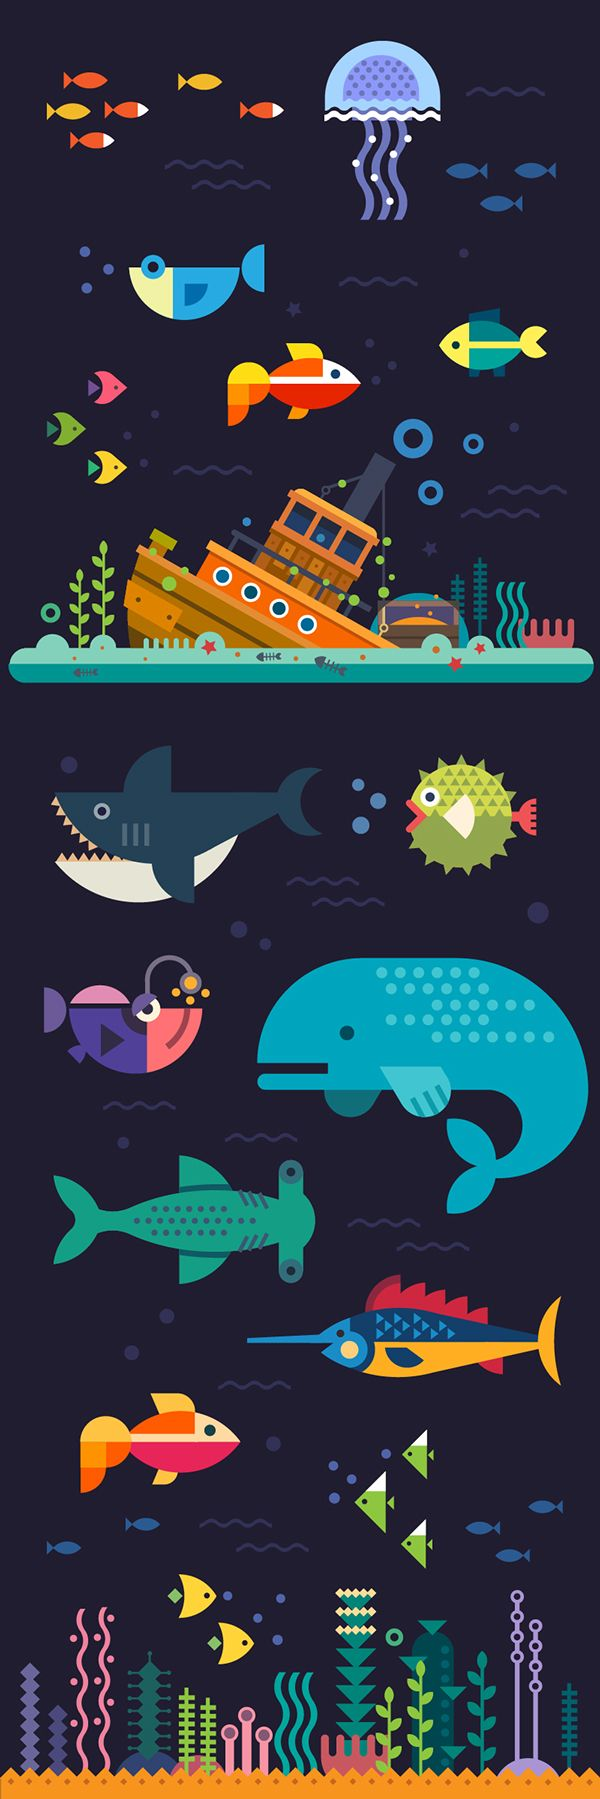 Underwater world on Behance